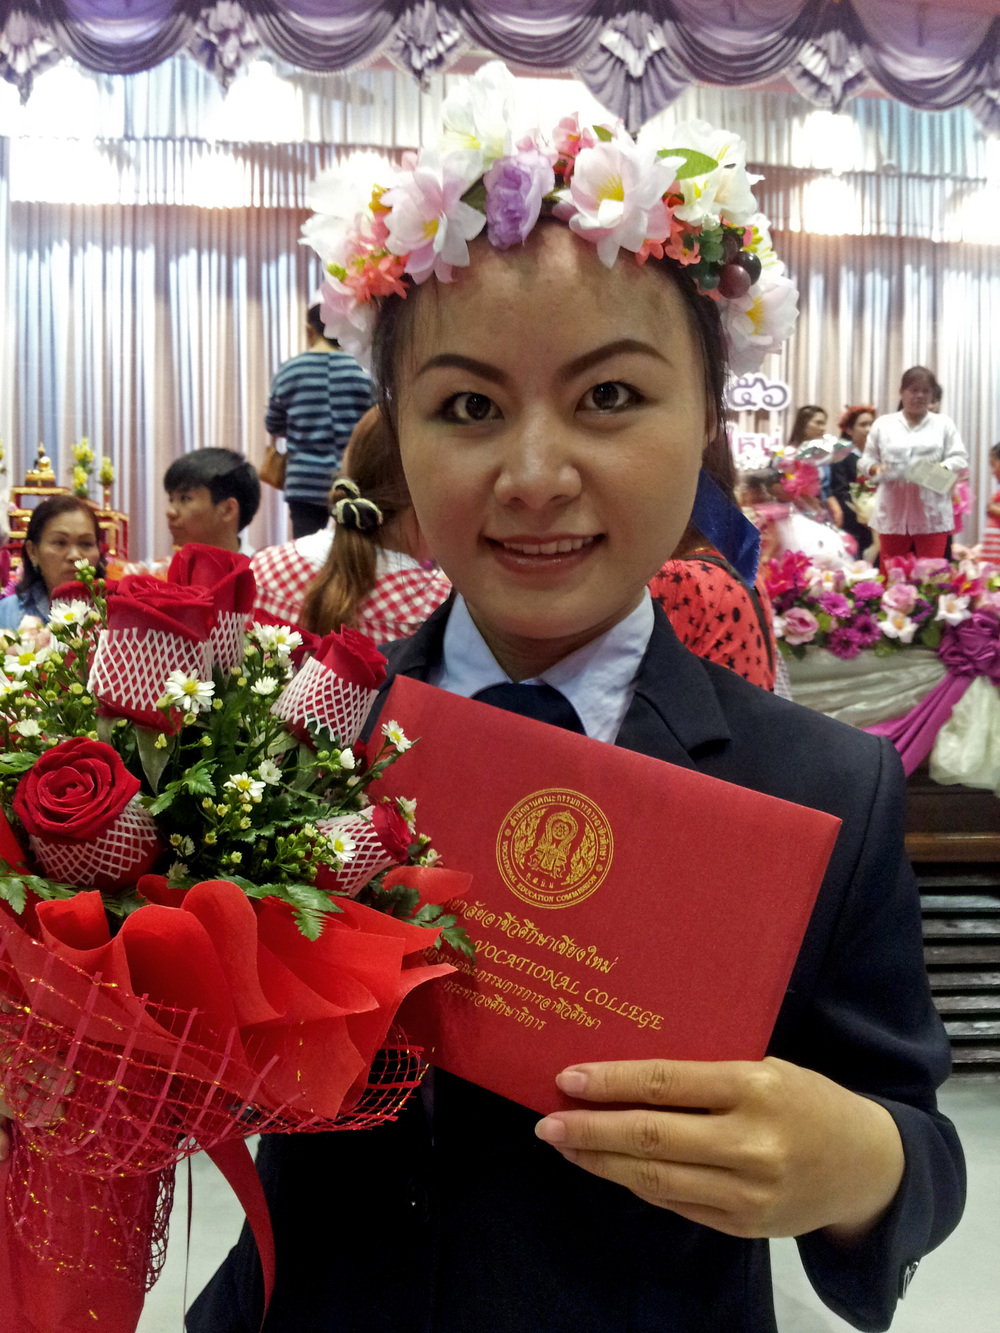 Degree in hand, this young lady plans to continue her education at a local university. Congrats on the result of all your hard work!